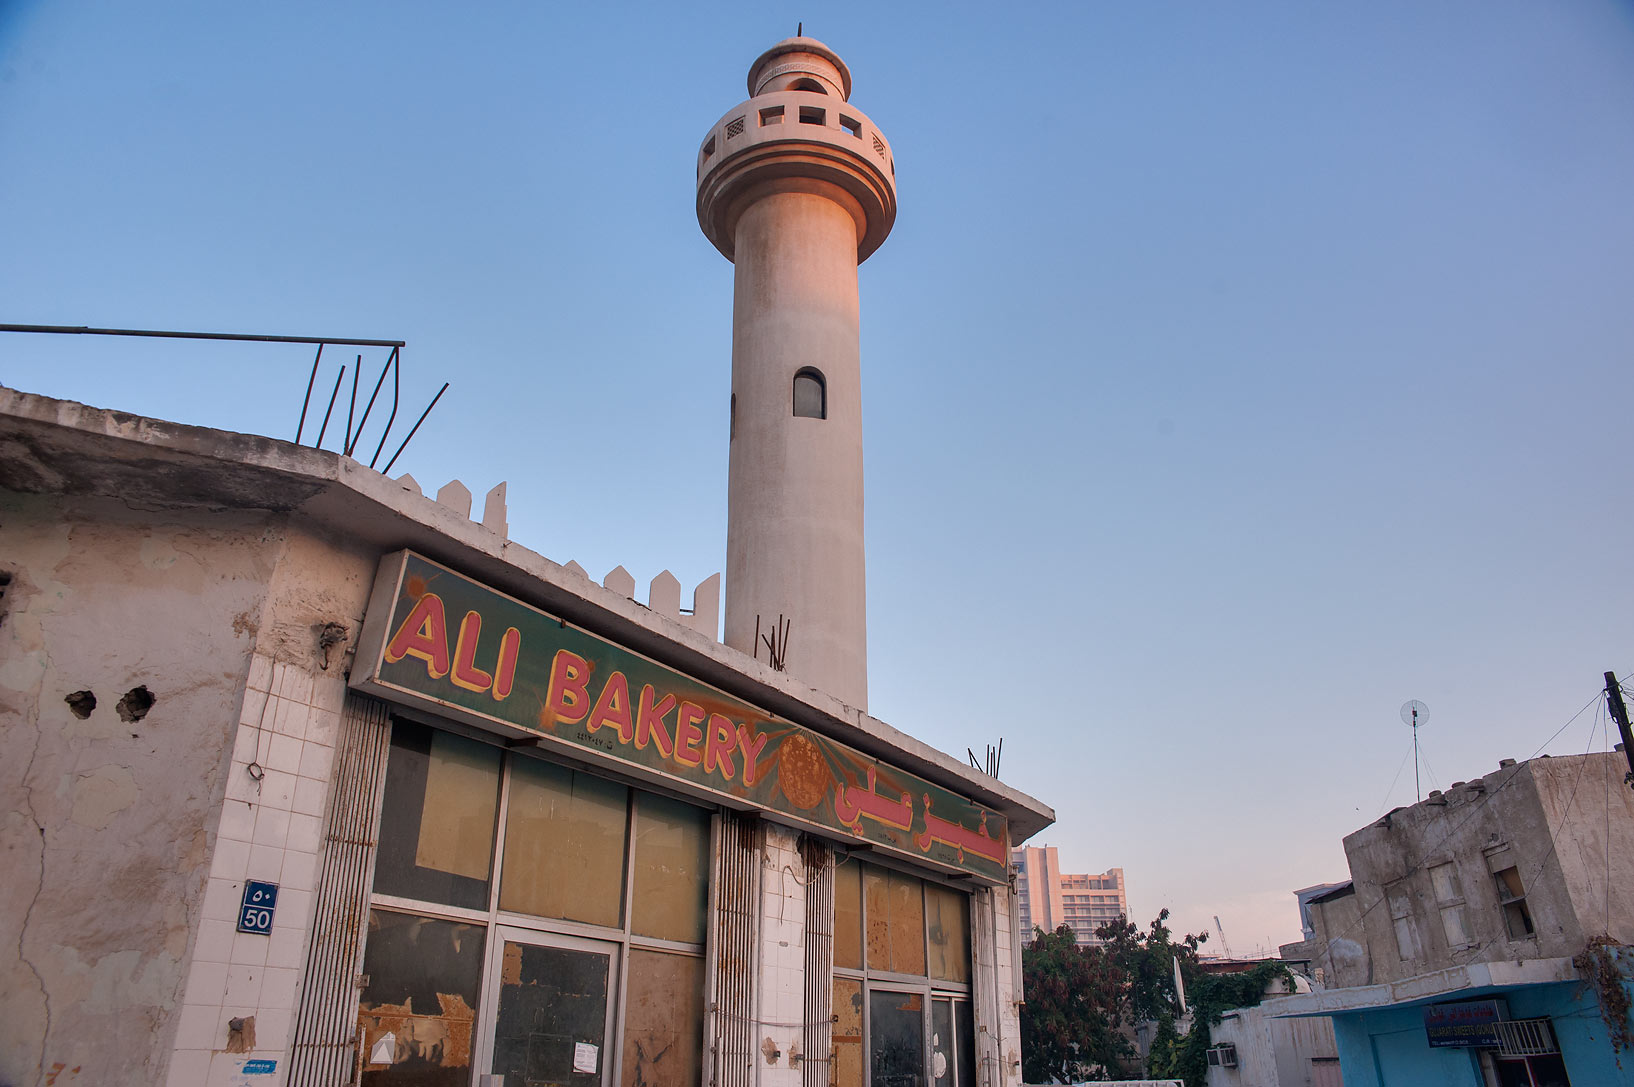 Ali Bakery and a mosque in Musheirib neighborhood area. Doha, Qatar